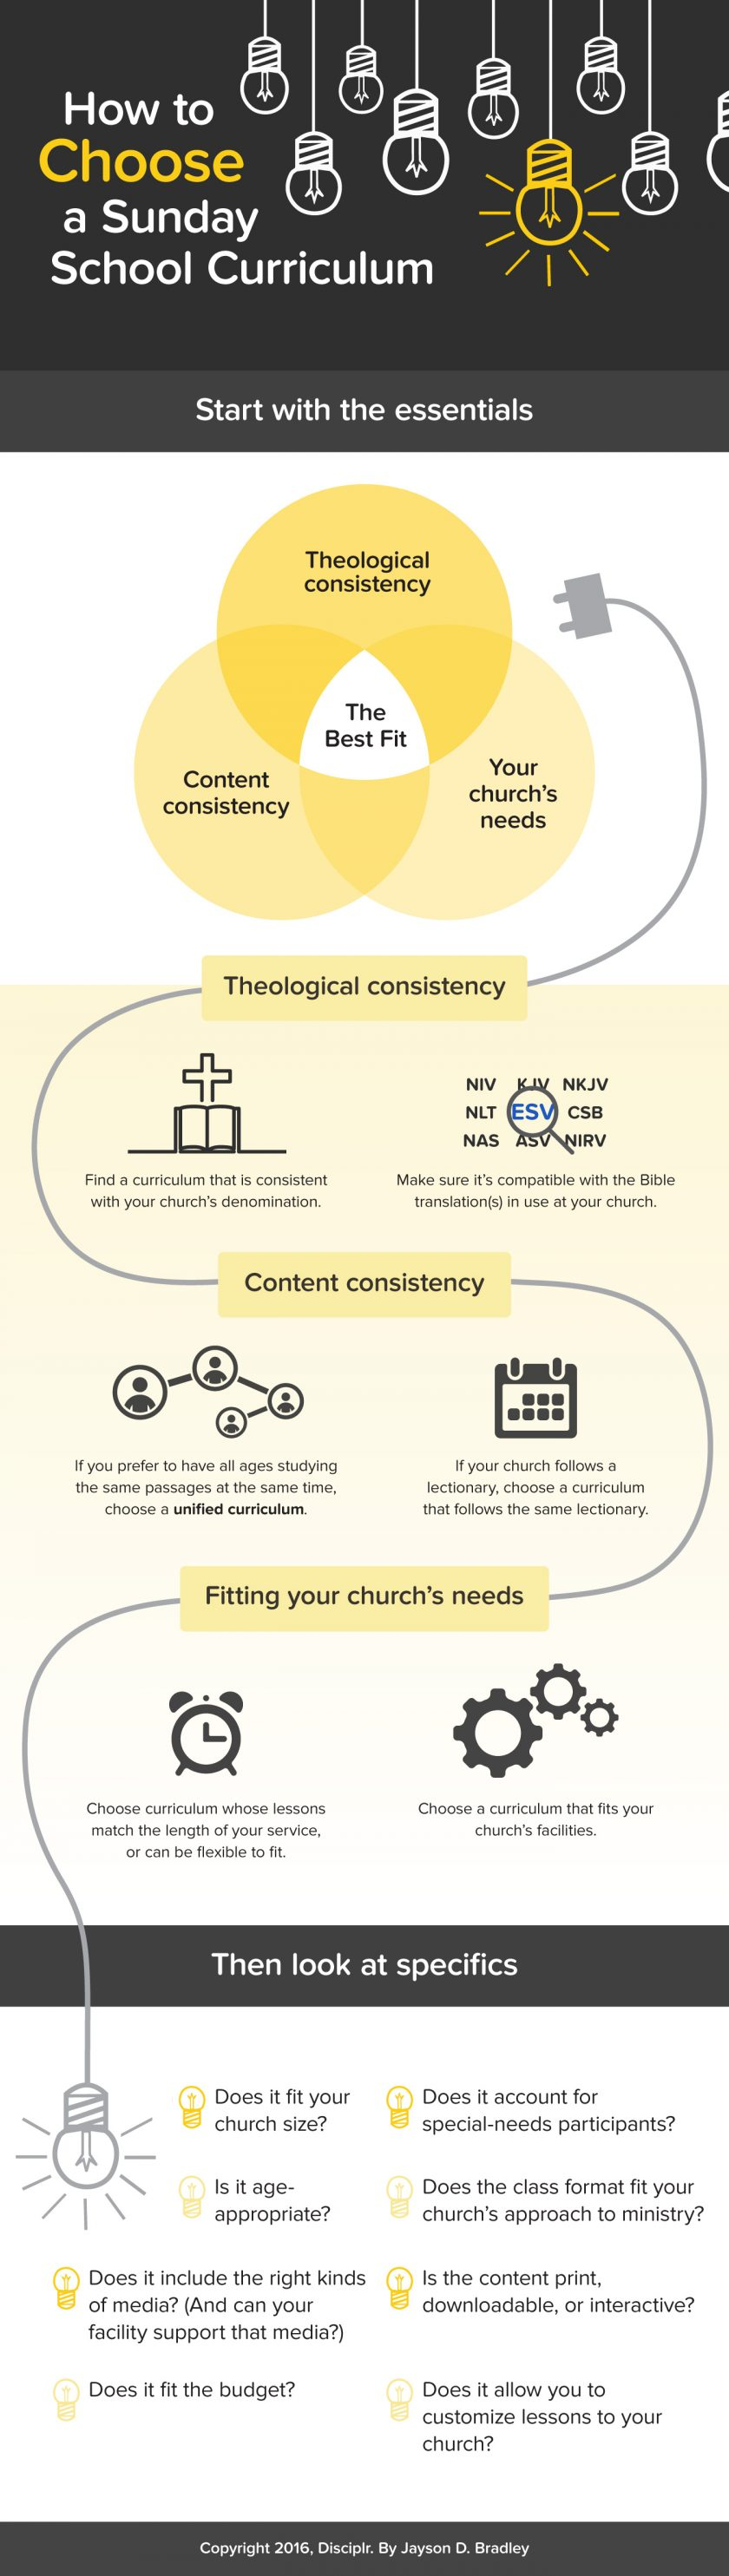 How to choose a Sunday school curriculum